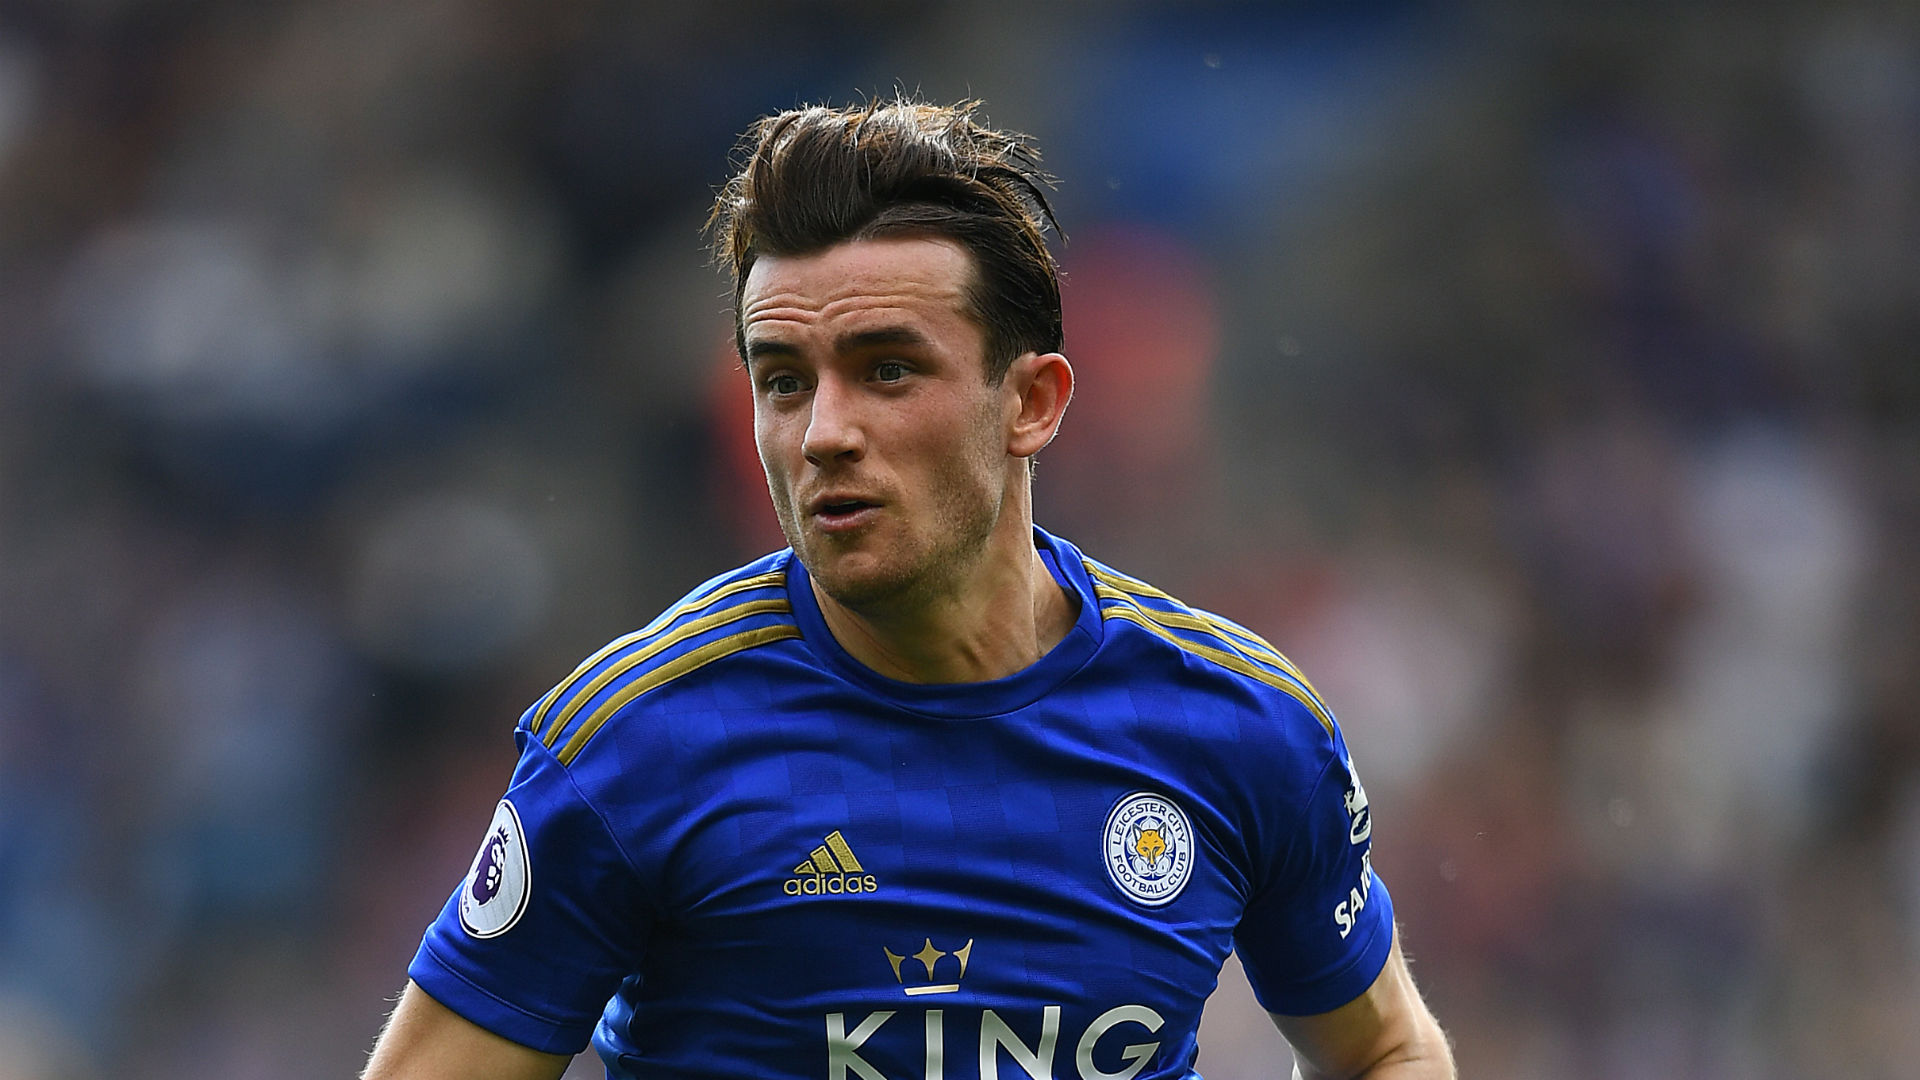 Manchester United turn to Leicester City's James Maddison for attacking reinforcement